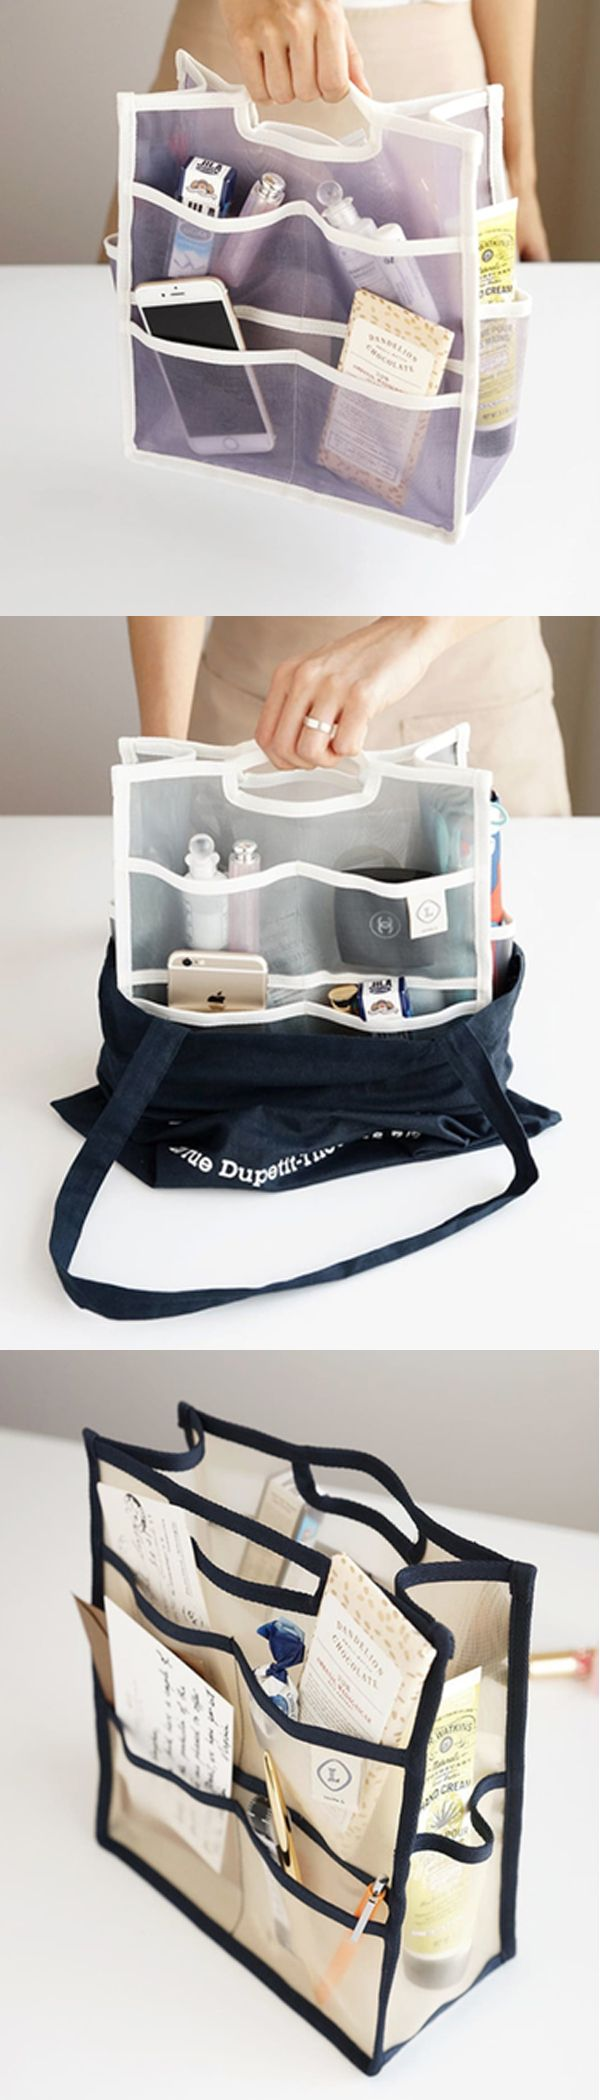 If your large purse gets messy with lots of daily essentials, the Large Mesh Purse Organizer will be a definite help! With large compartment and many pockets, organize your items neatly and you can say farewell to the messy purse!